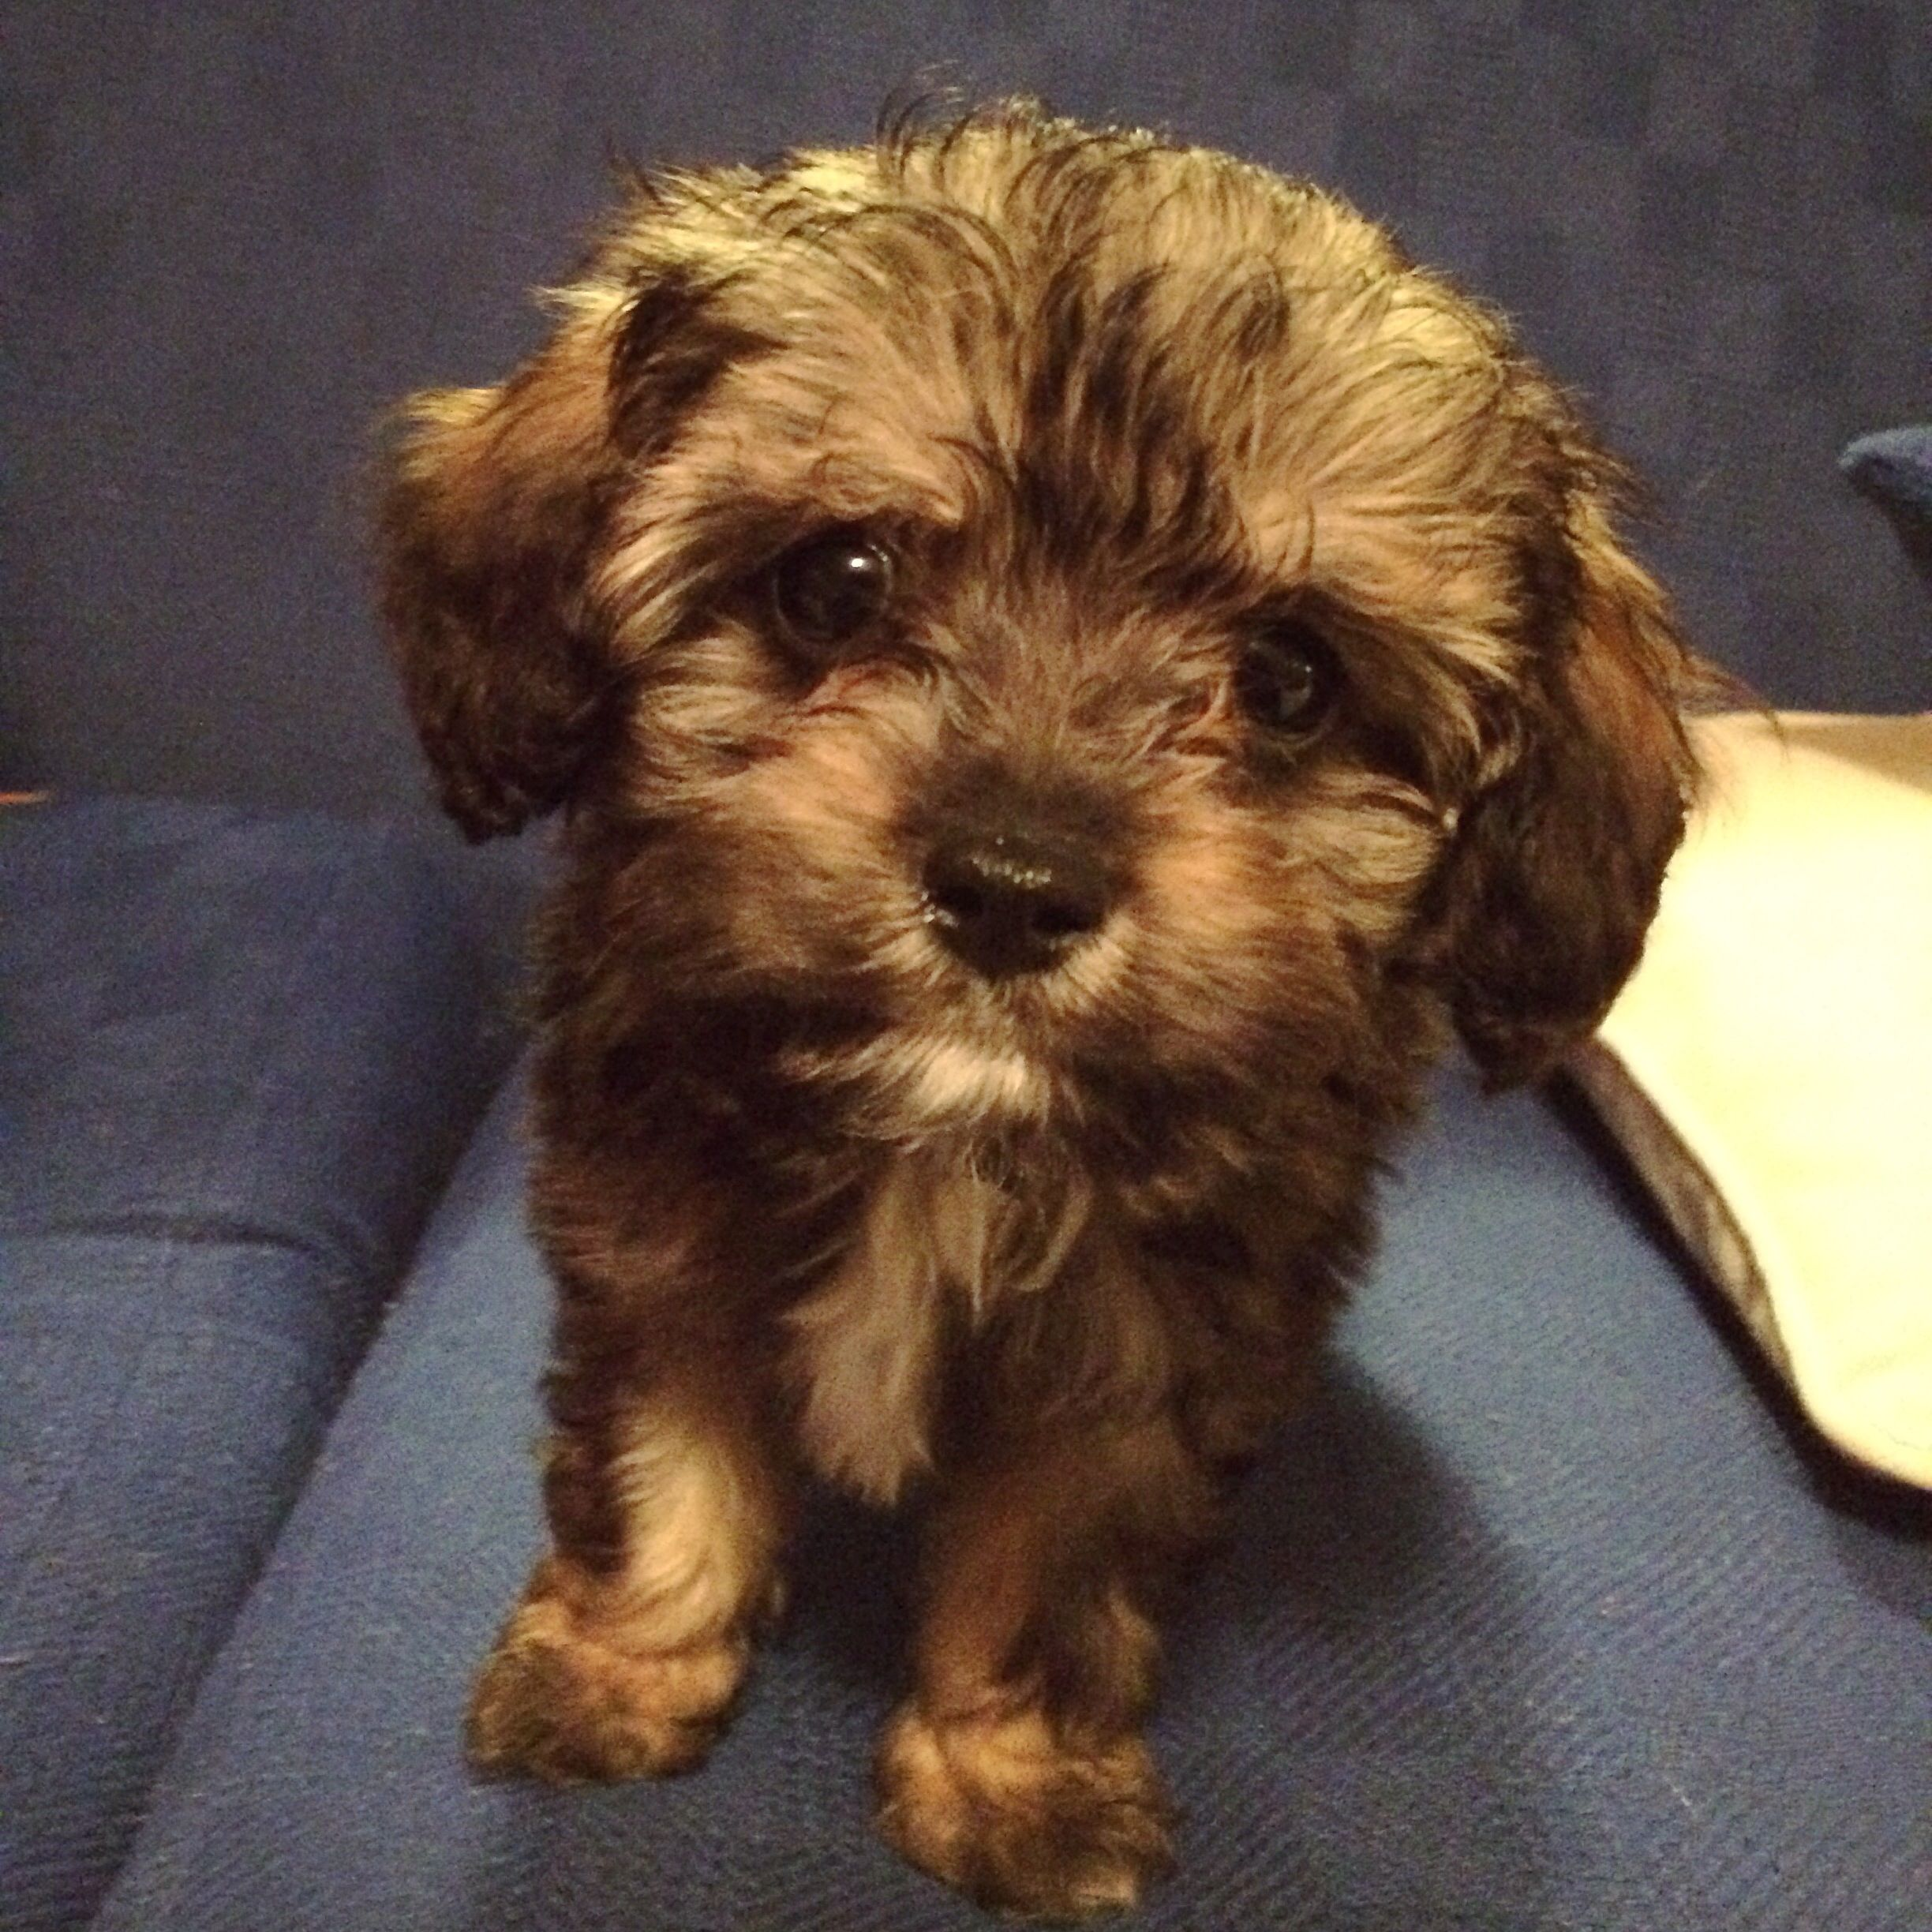 Fenton, a cavoodle, at eight weeks. My gorgeous baby boy. xx